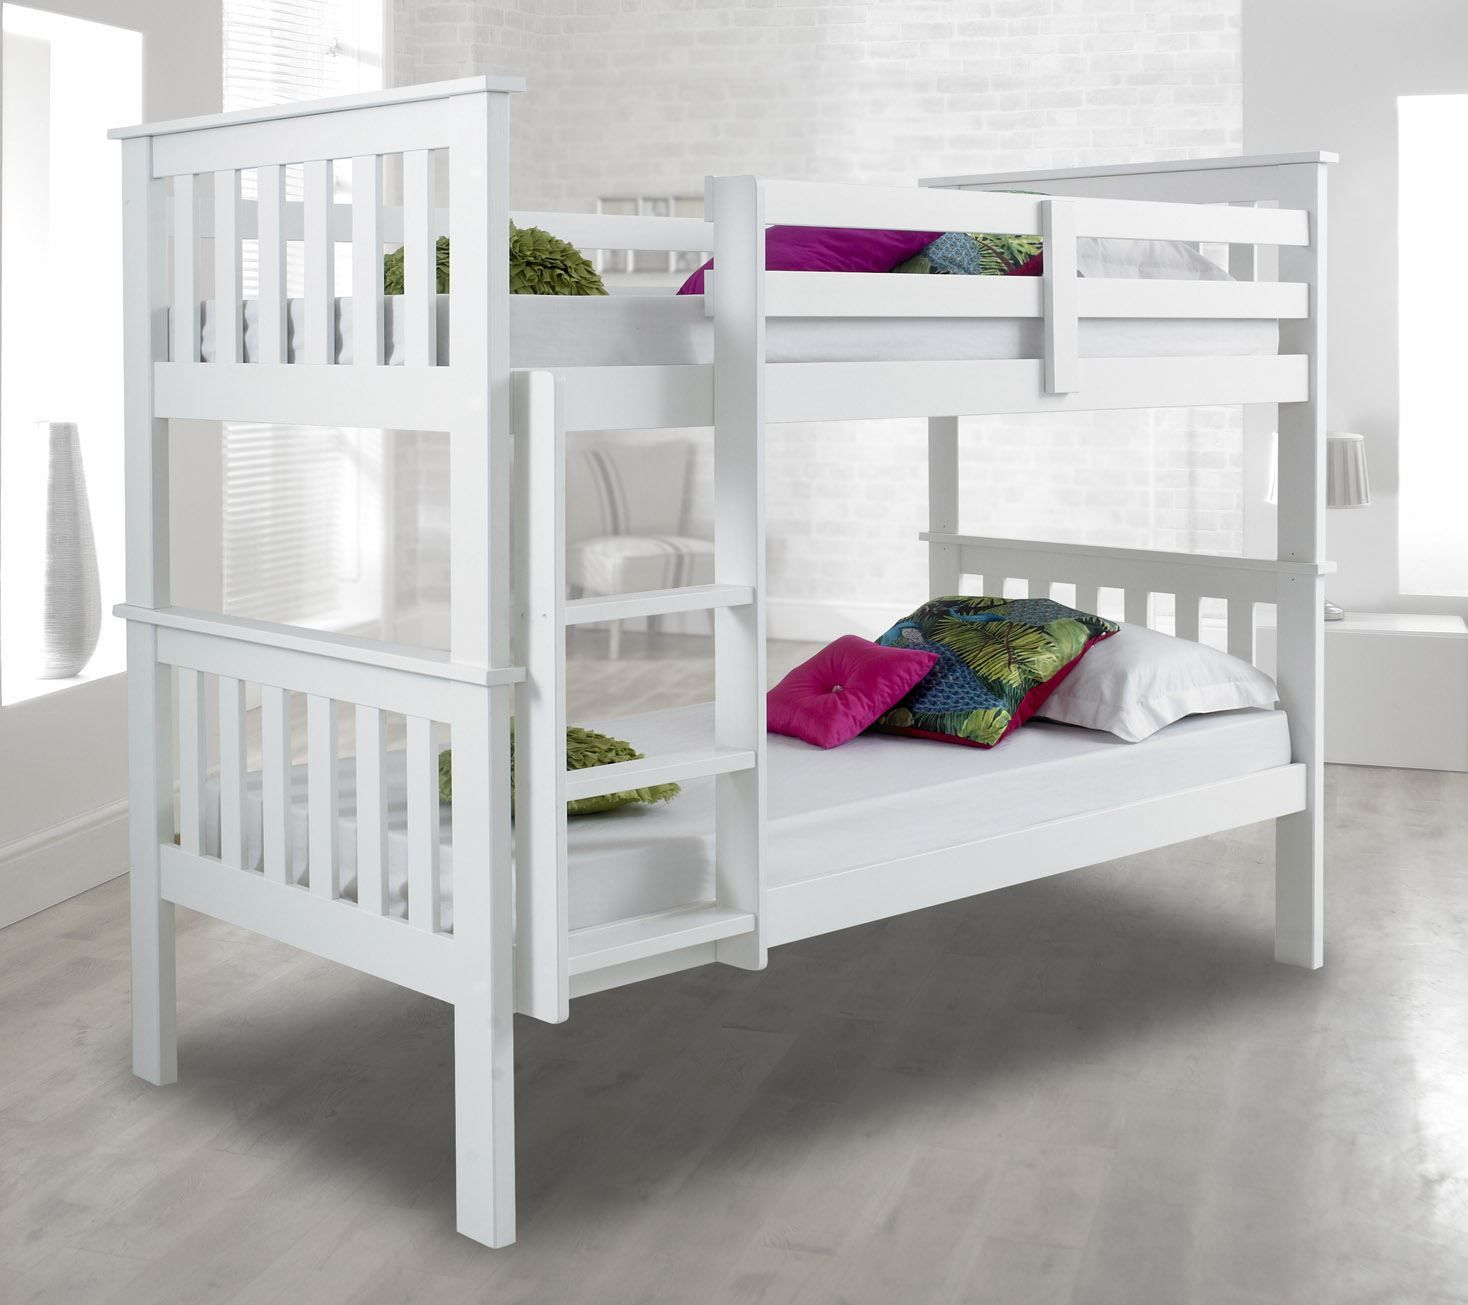 2019 Ebay Bunk Beds With Mattresses Interior Design For Bedrooms Check More At